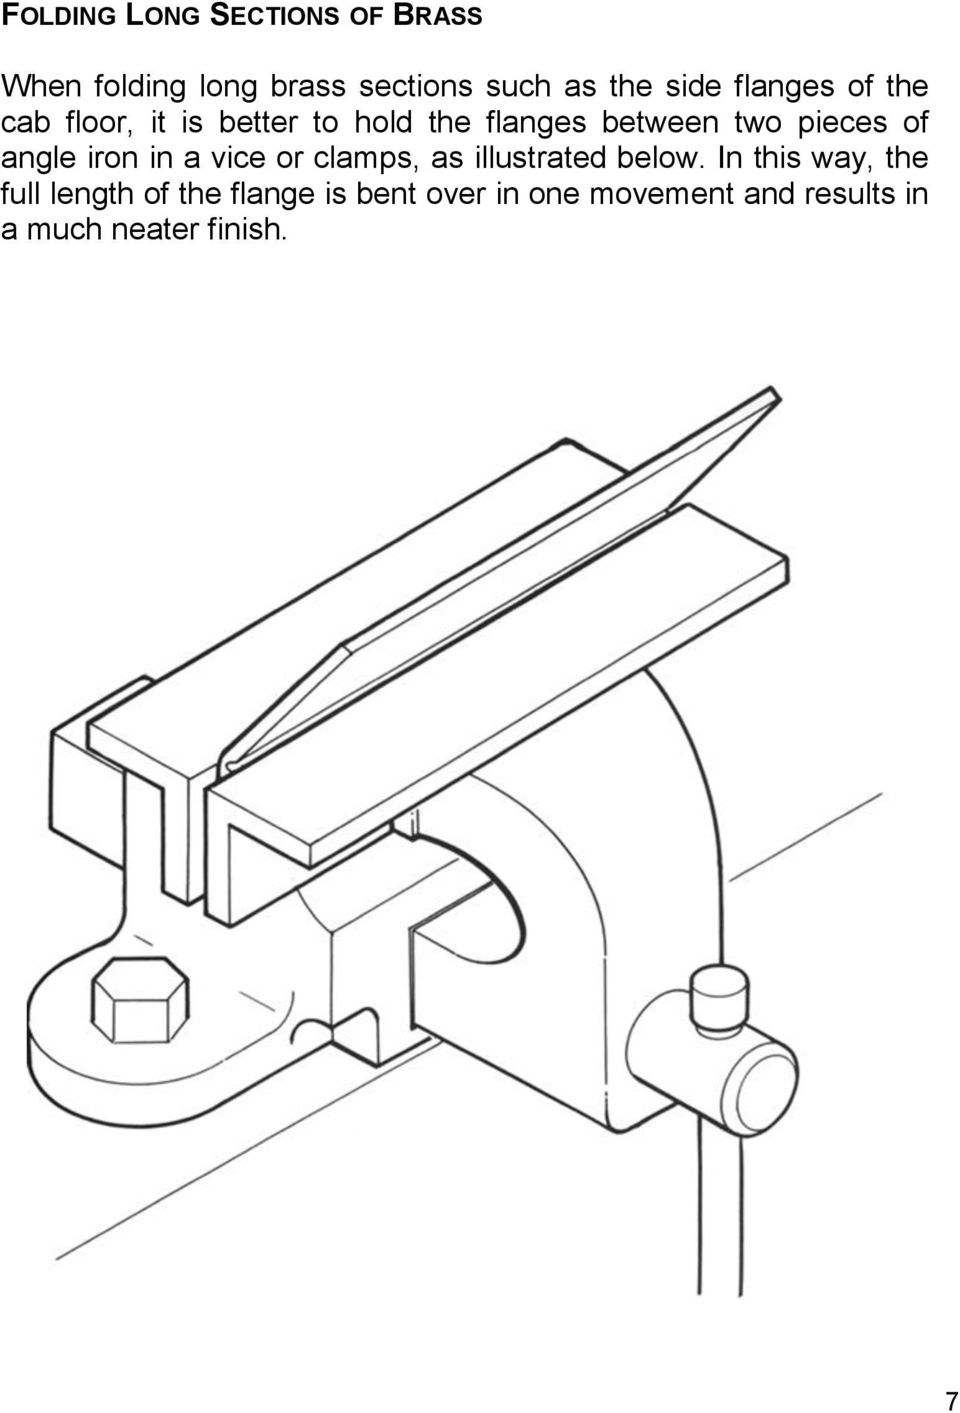 angle iron in a vice or clamps, as illustrated below.